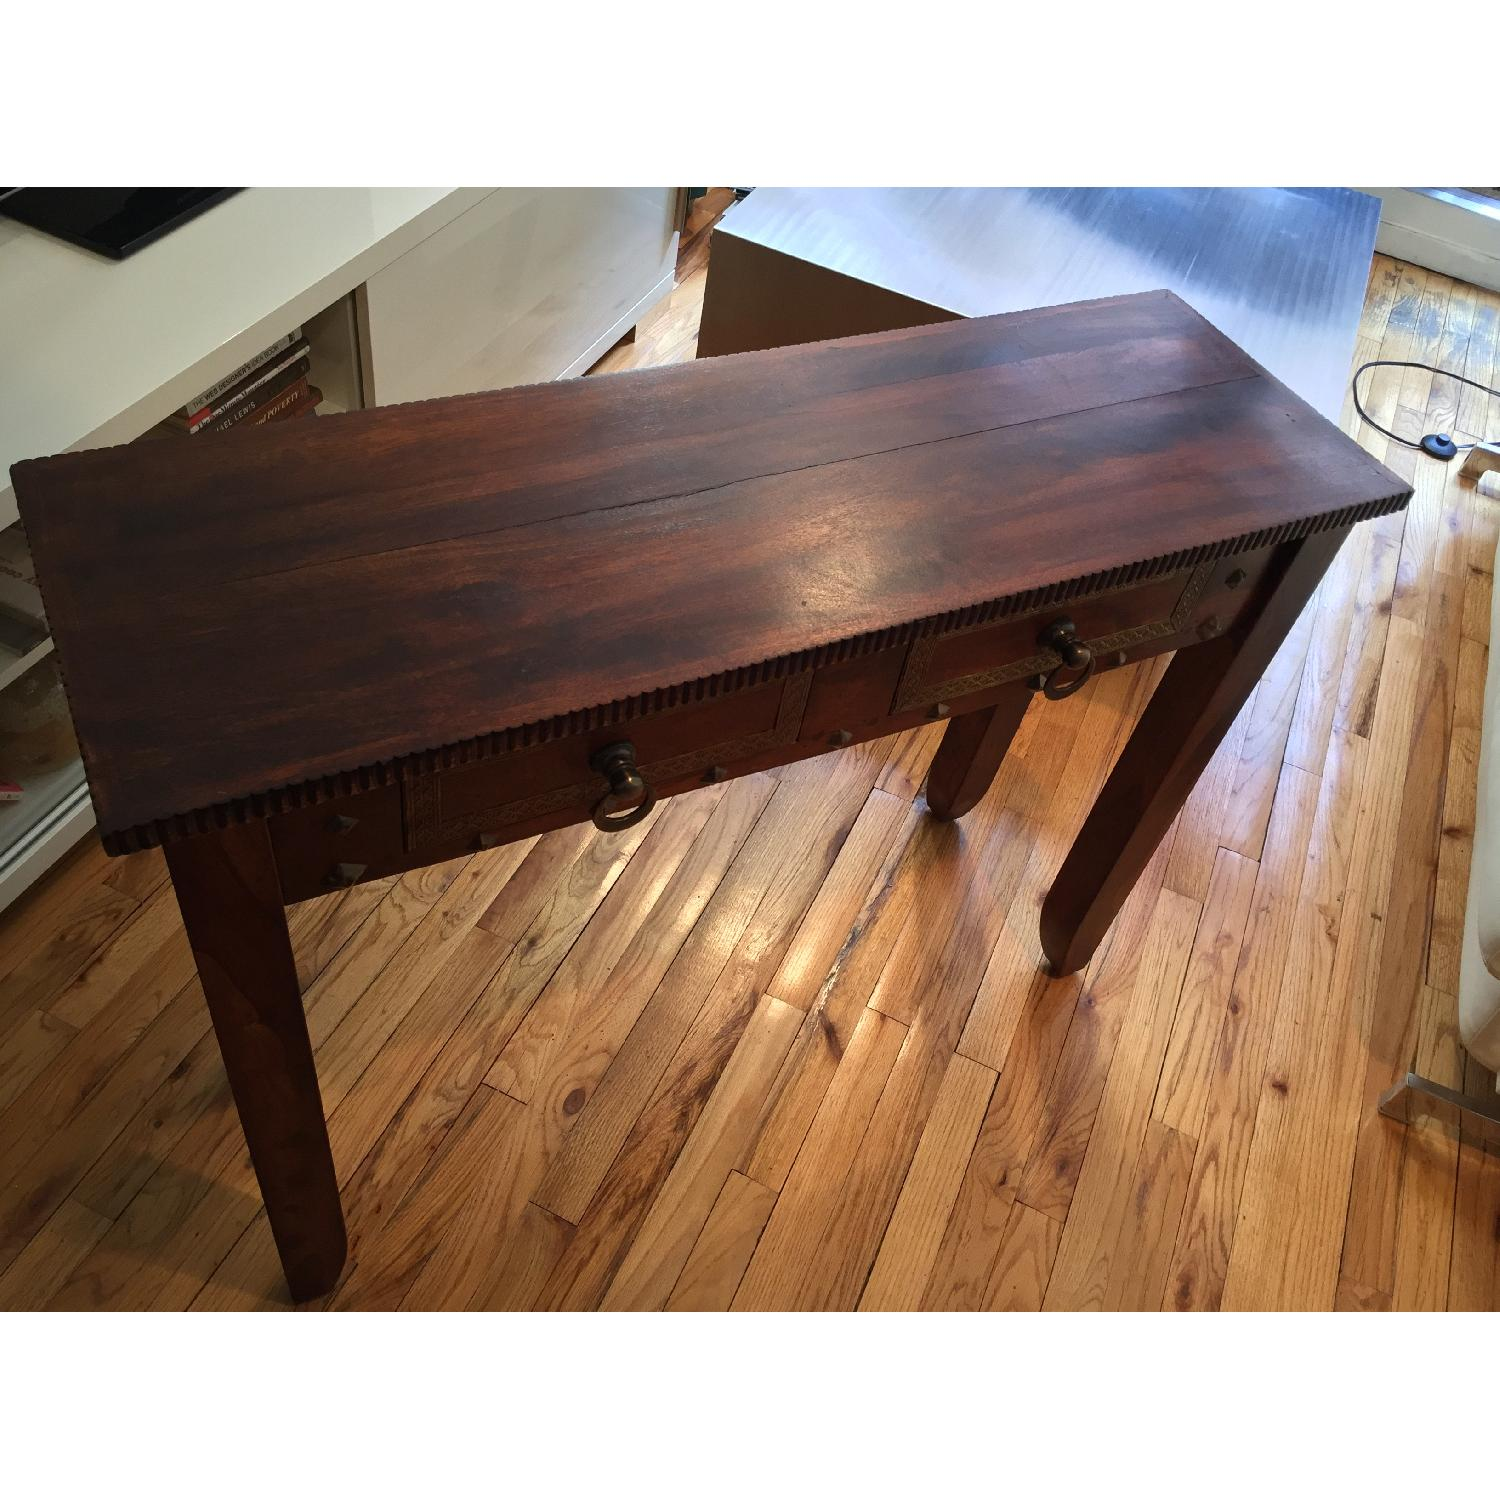 Pier 1 Vintage Heera Indian Handcrafted Console Table - image-4